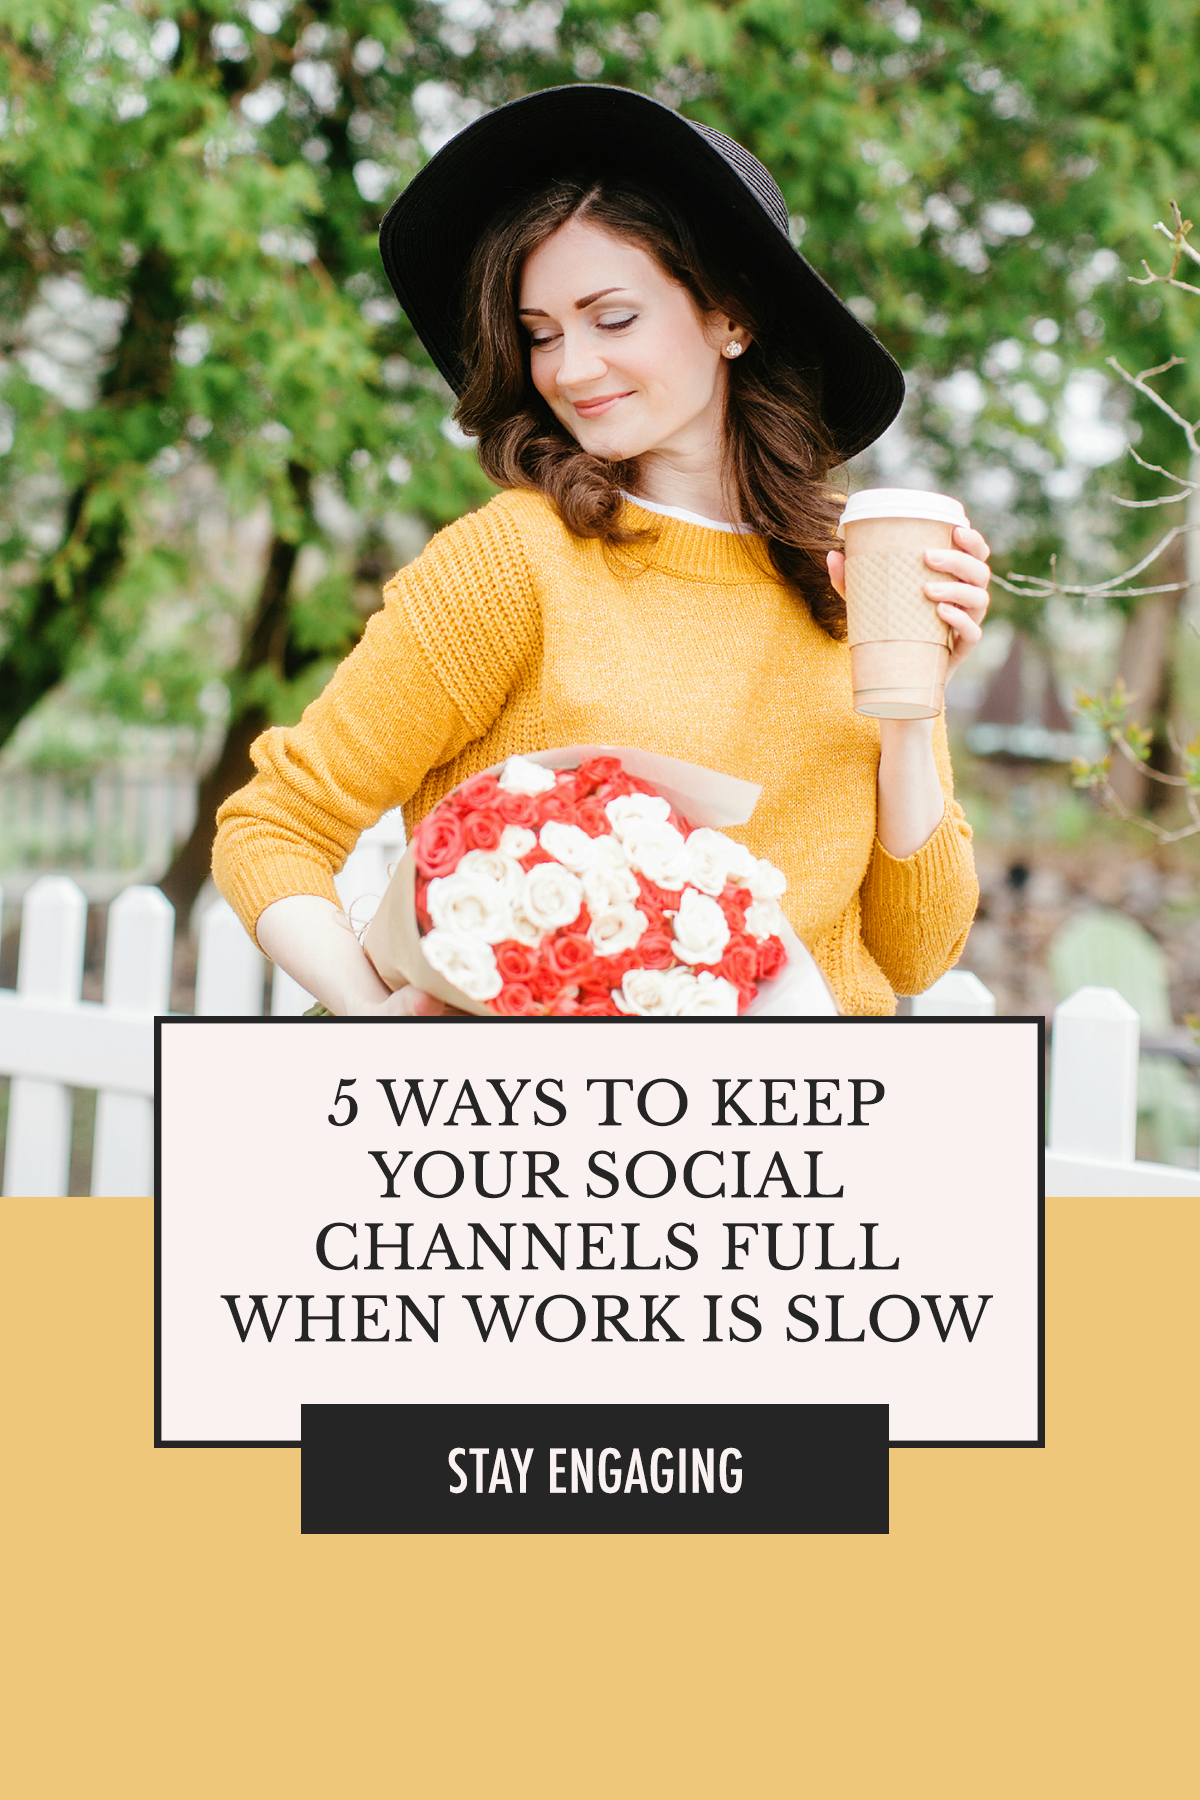 When you have no new work to showcase, does your social media presence start lacking? Reverse that with 5 Ways to Keep Your Social Channels Full When Work Is Slow | Alexis The Greek blog